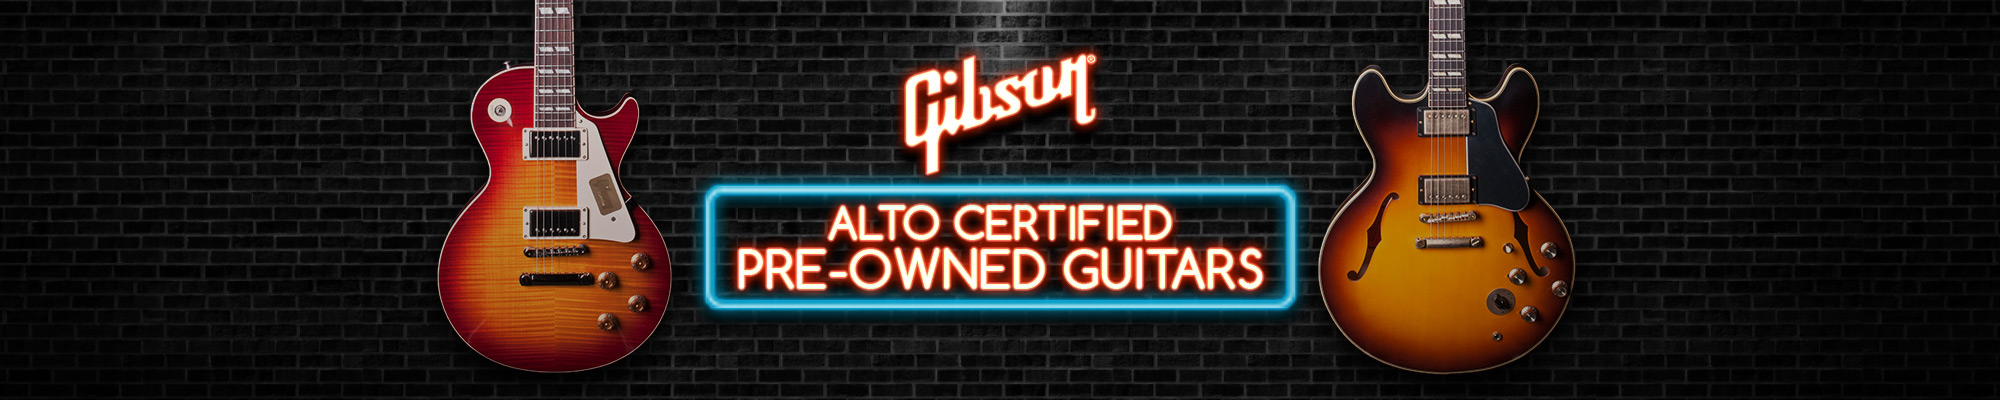 Gibson Certified Pre-Owned Guitars